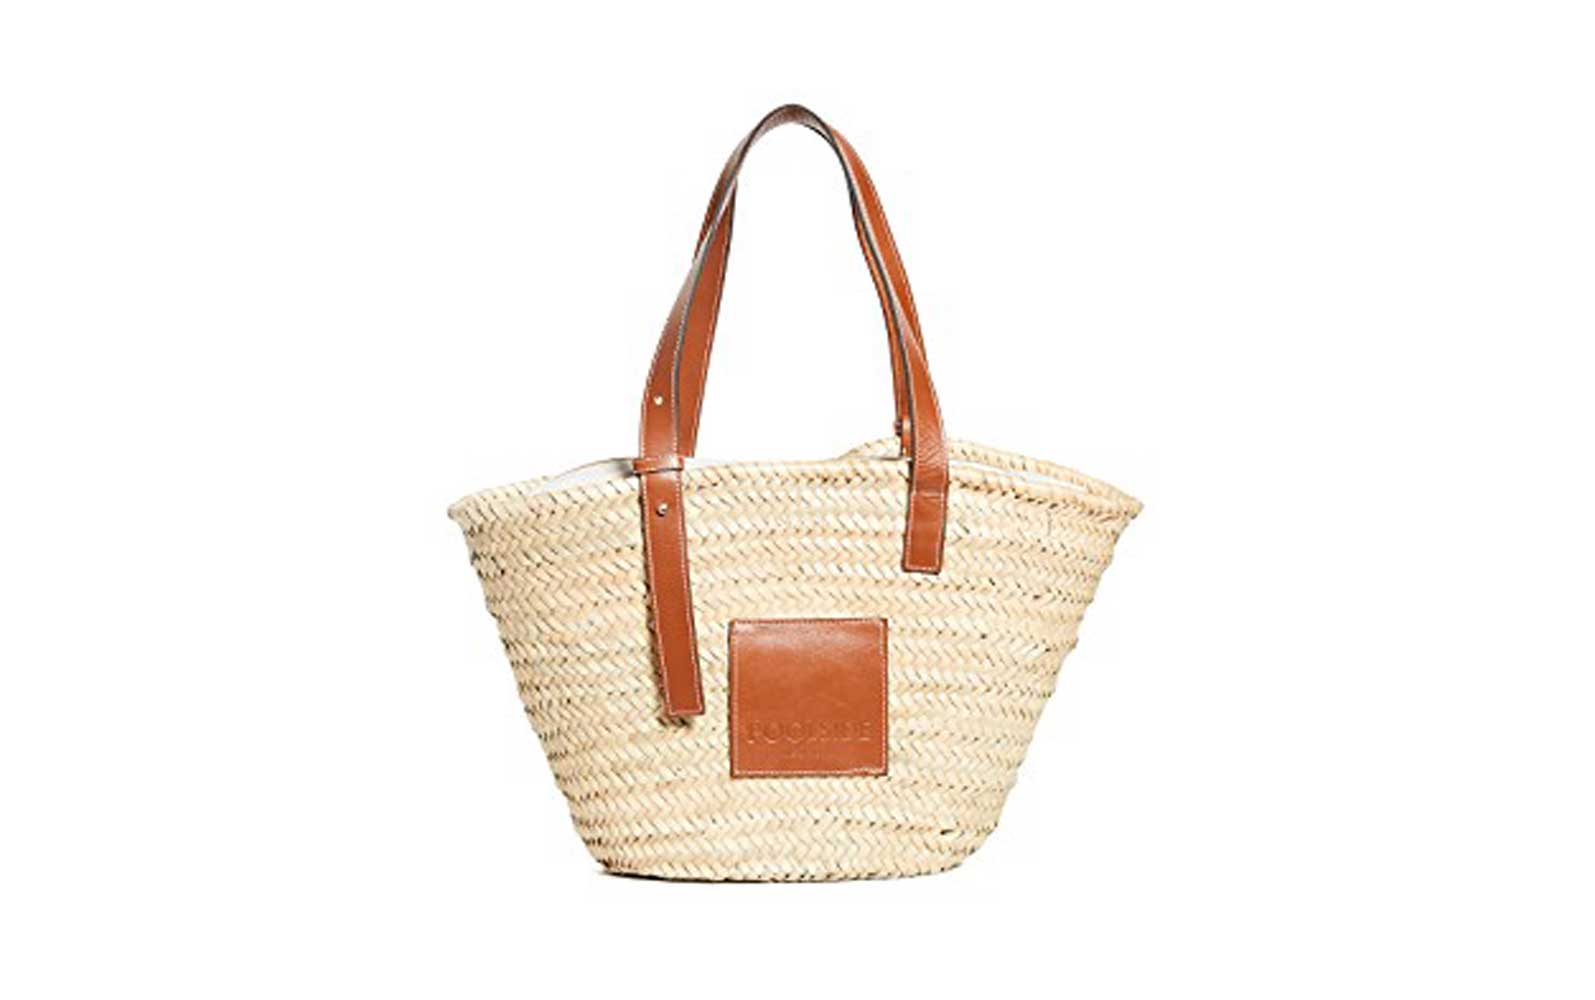 beige woven tote with light brown leather shoulder strap and accents